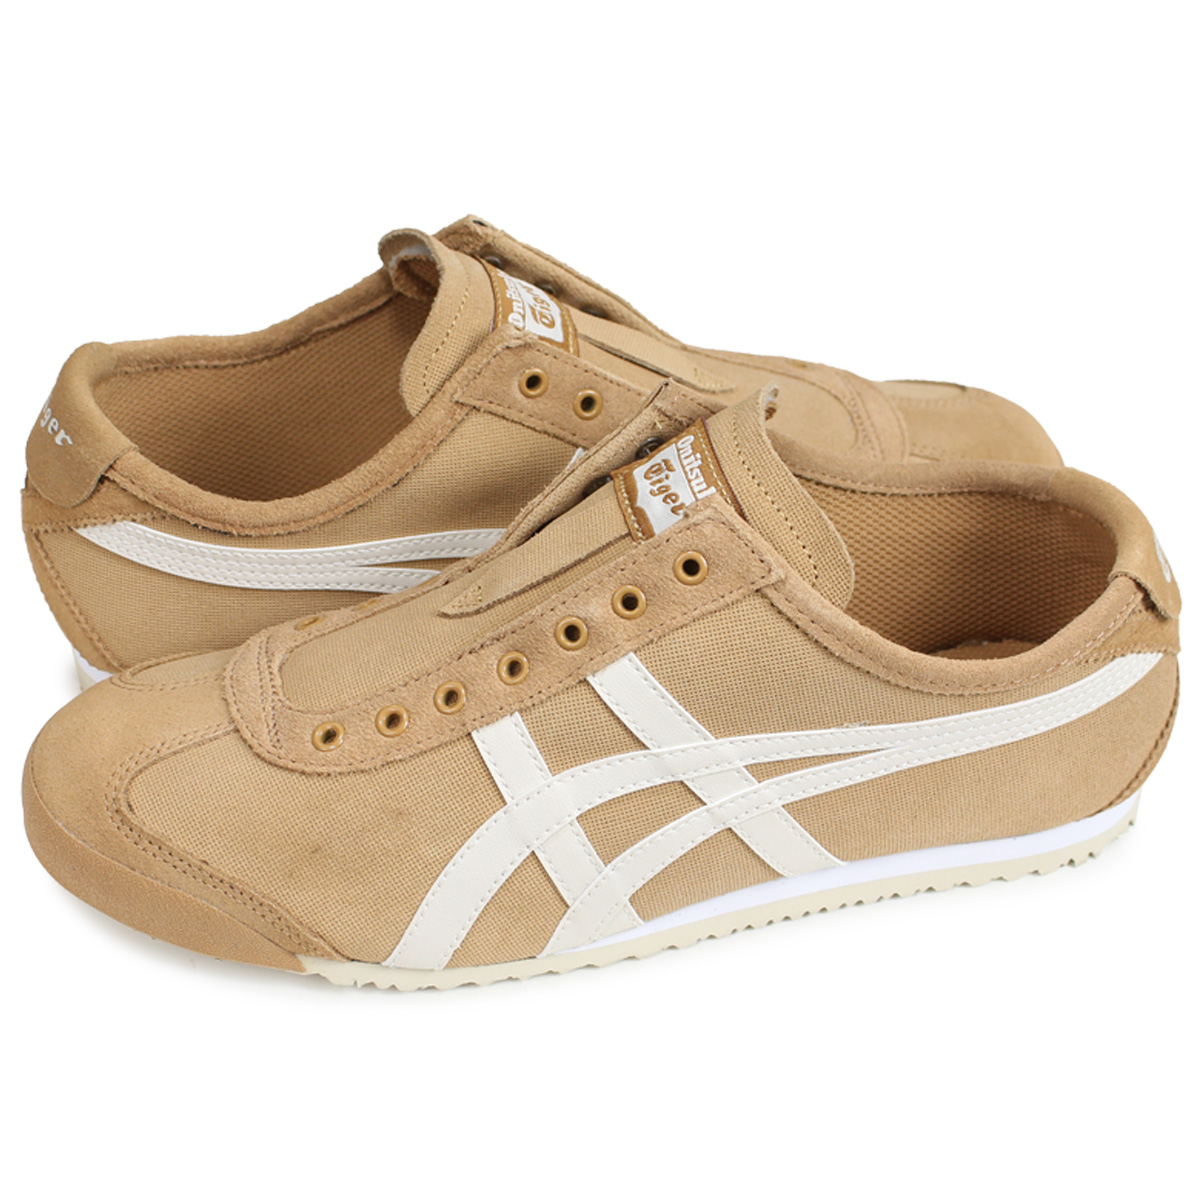 new product b144e 9dc0c Onitsuka Tiger MEXICO 66 SLIP-ON Onitsuka tiger Mexico 66 slip-ons men gap  Dis sneakers 1183A042-200 brown beige [1810]